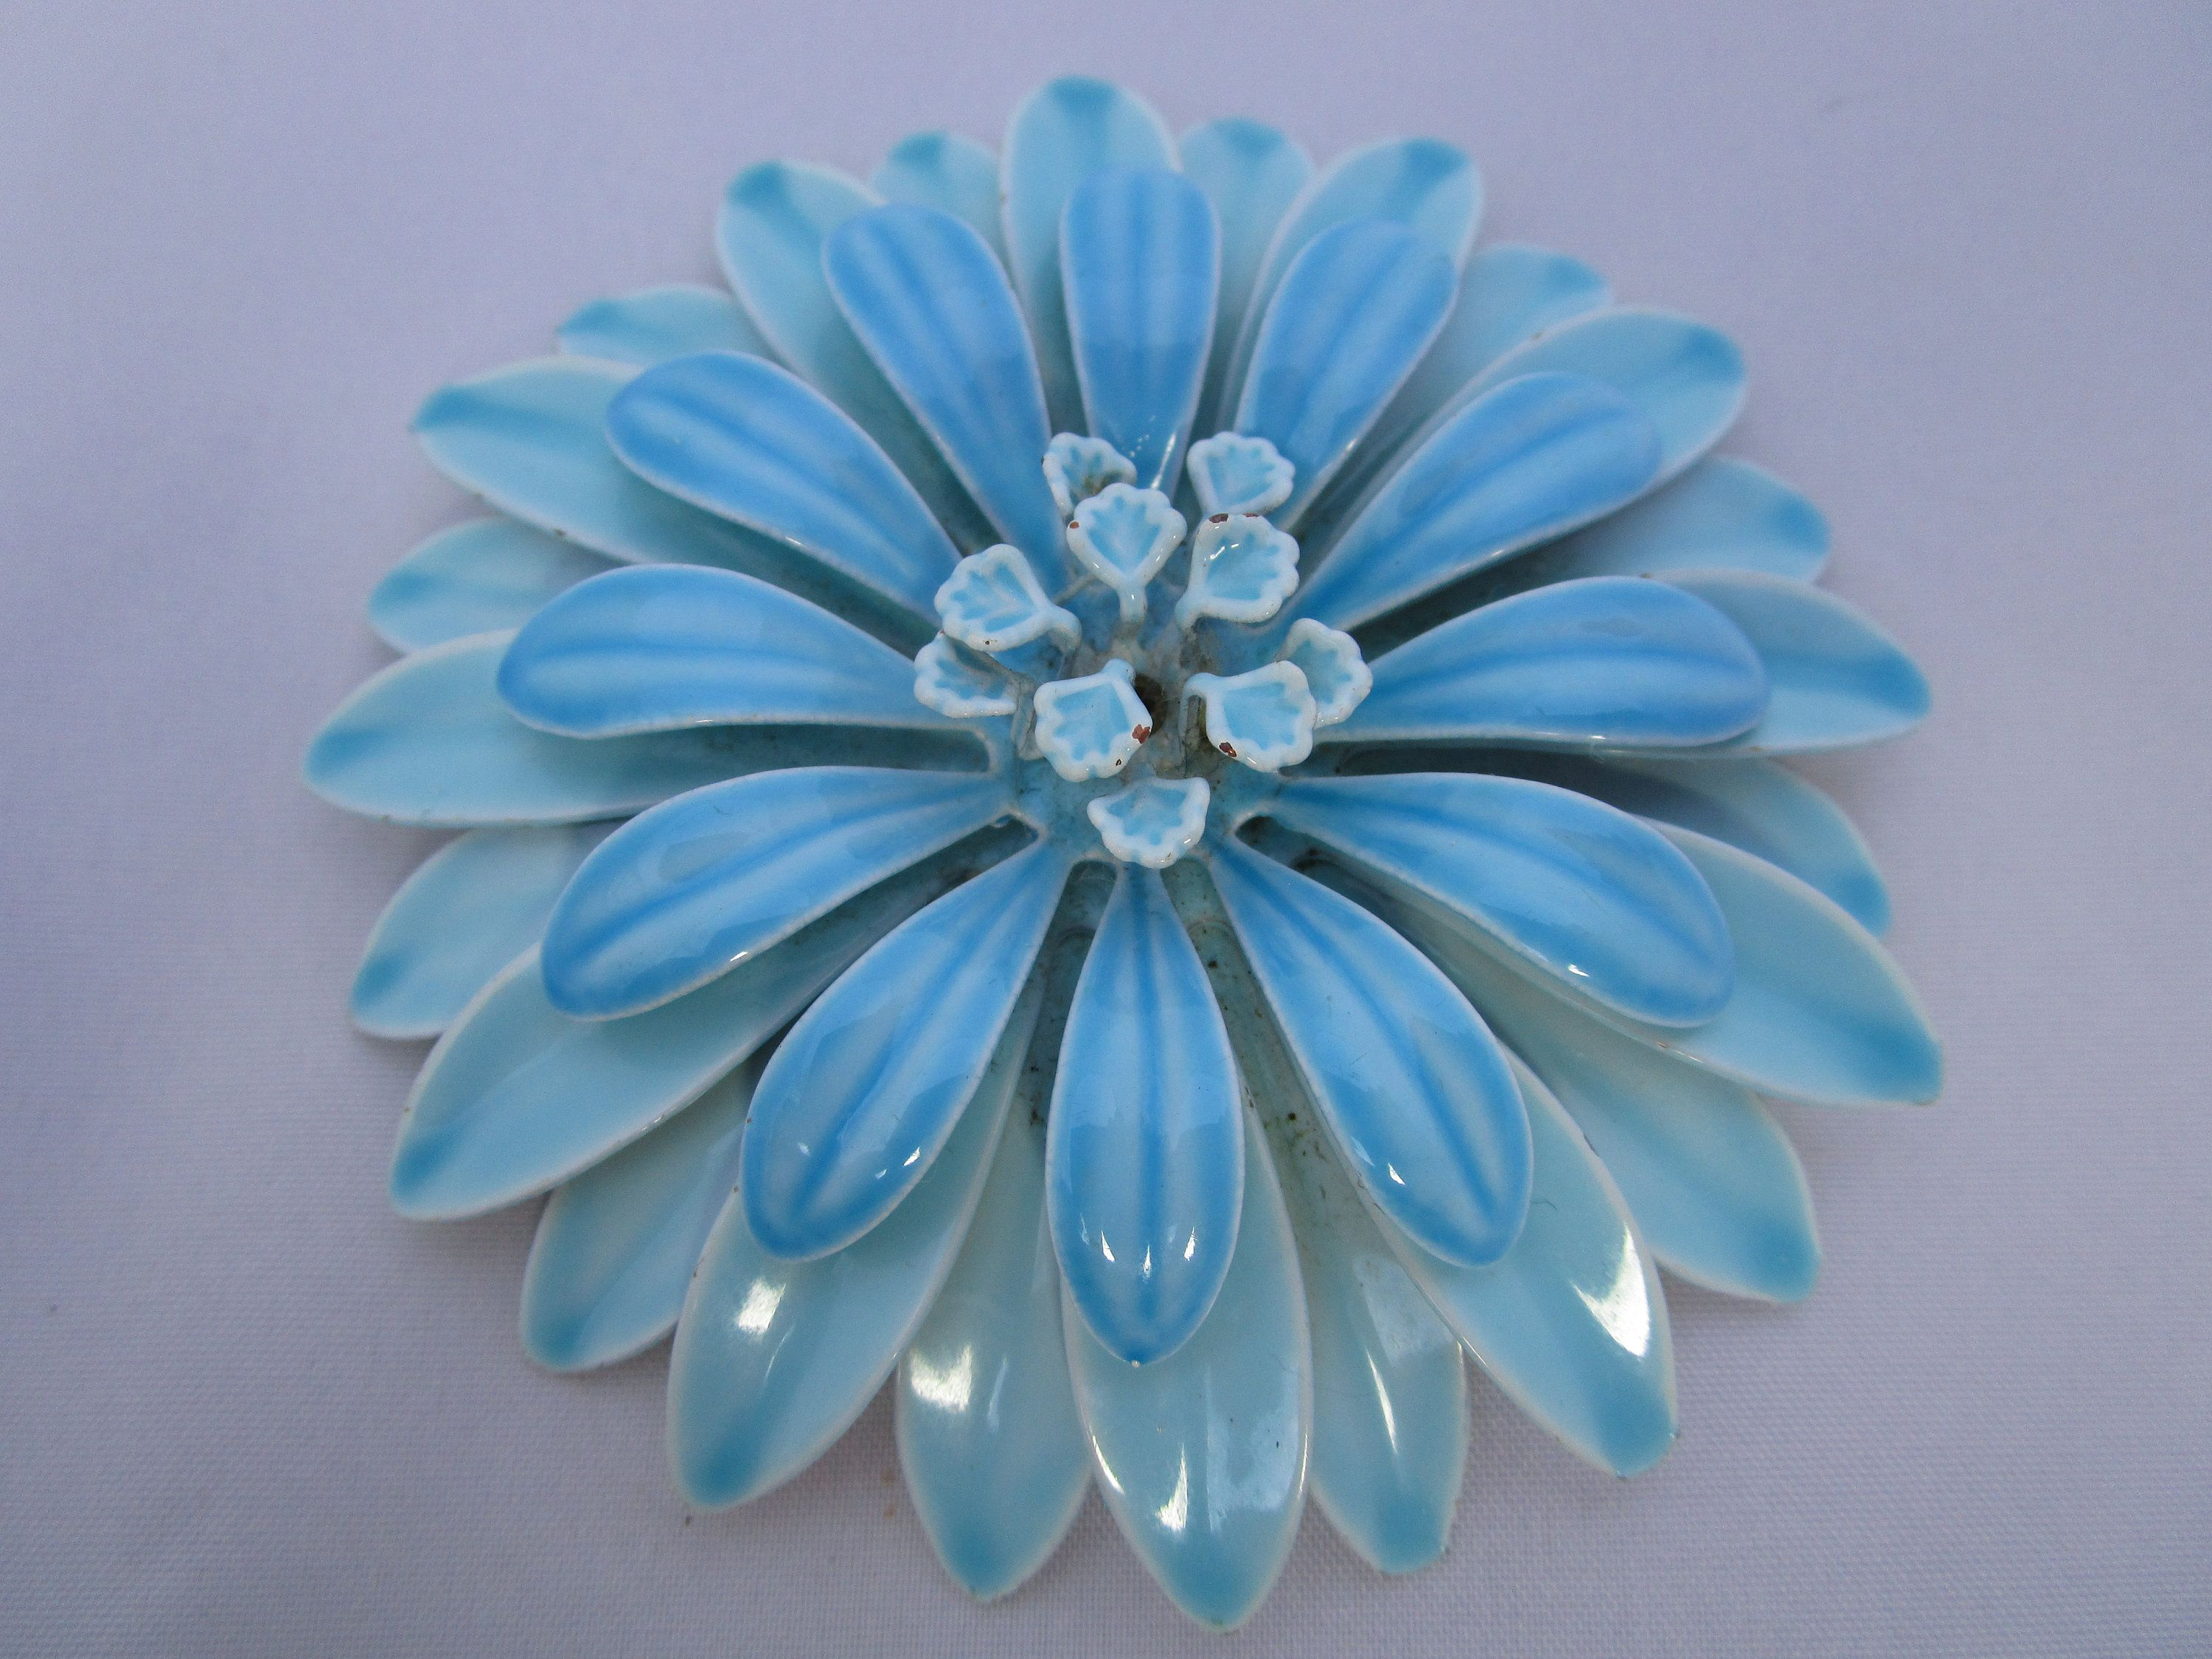 Retro Accessory Quality Vintage Blue Flower Pin Early 1970/'s Mod Flower Brooch Pin Hand-painted Metal Pin Pin Sarong Pin. Brooch